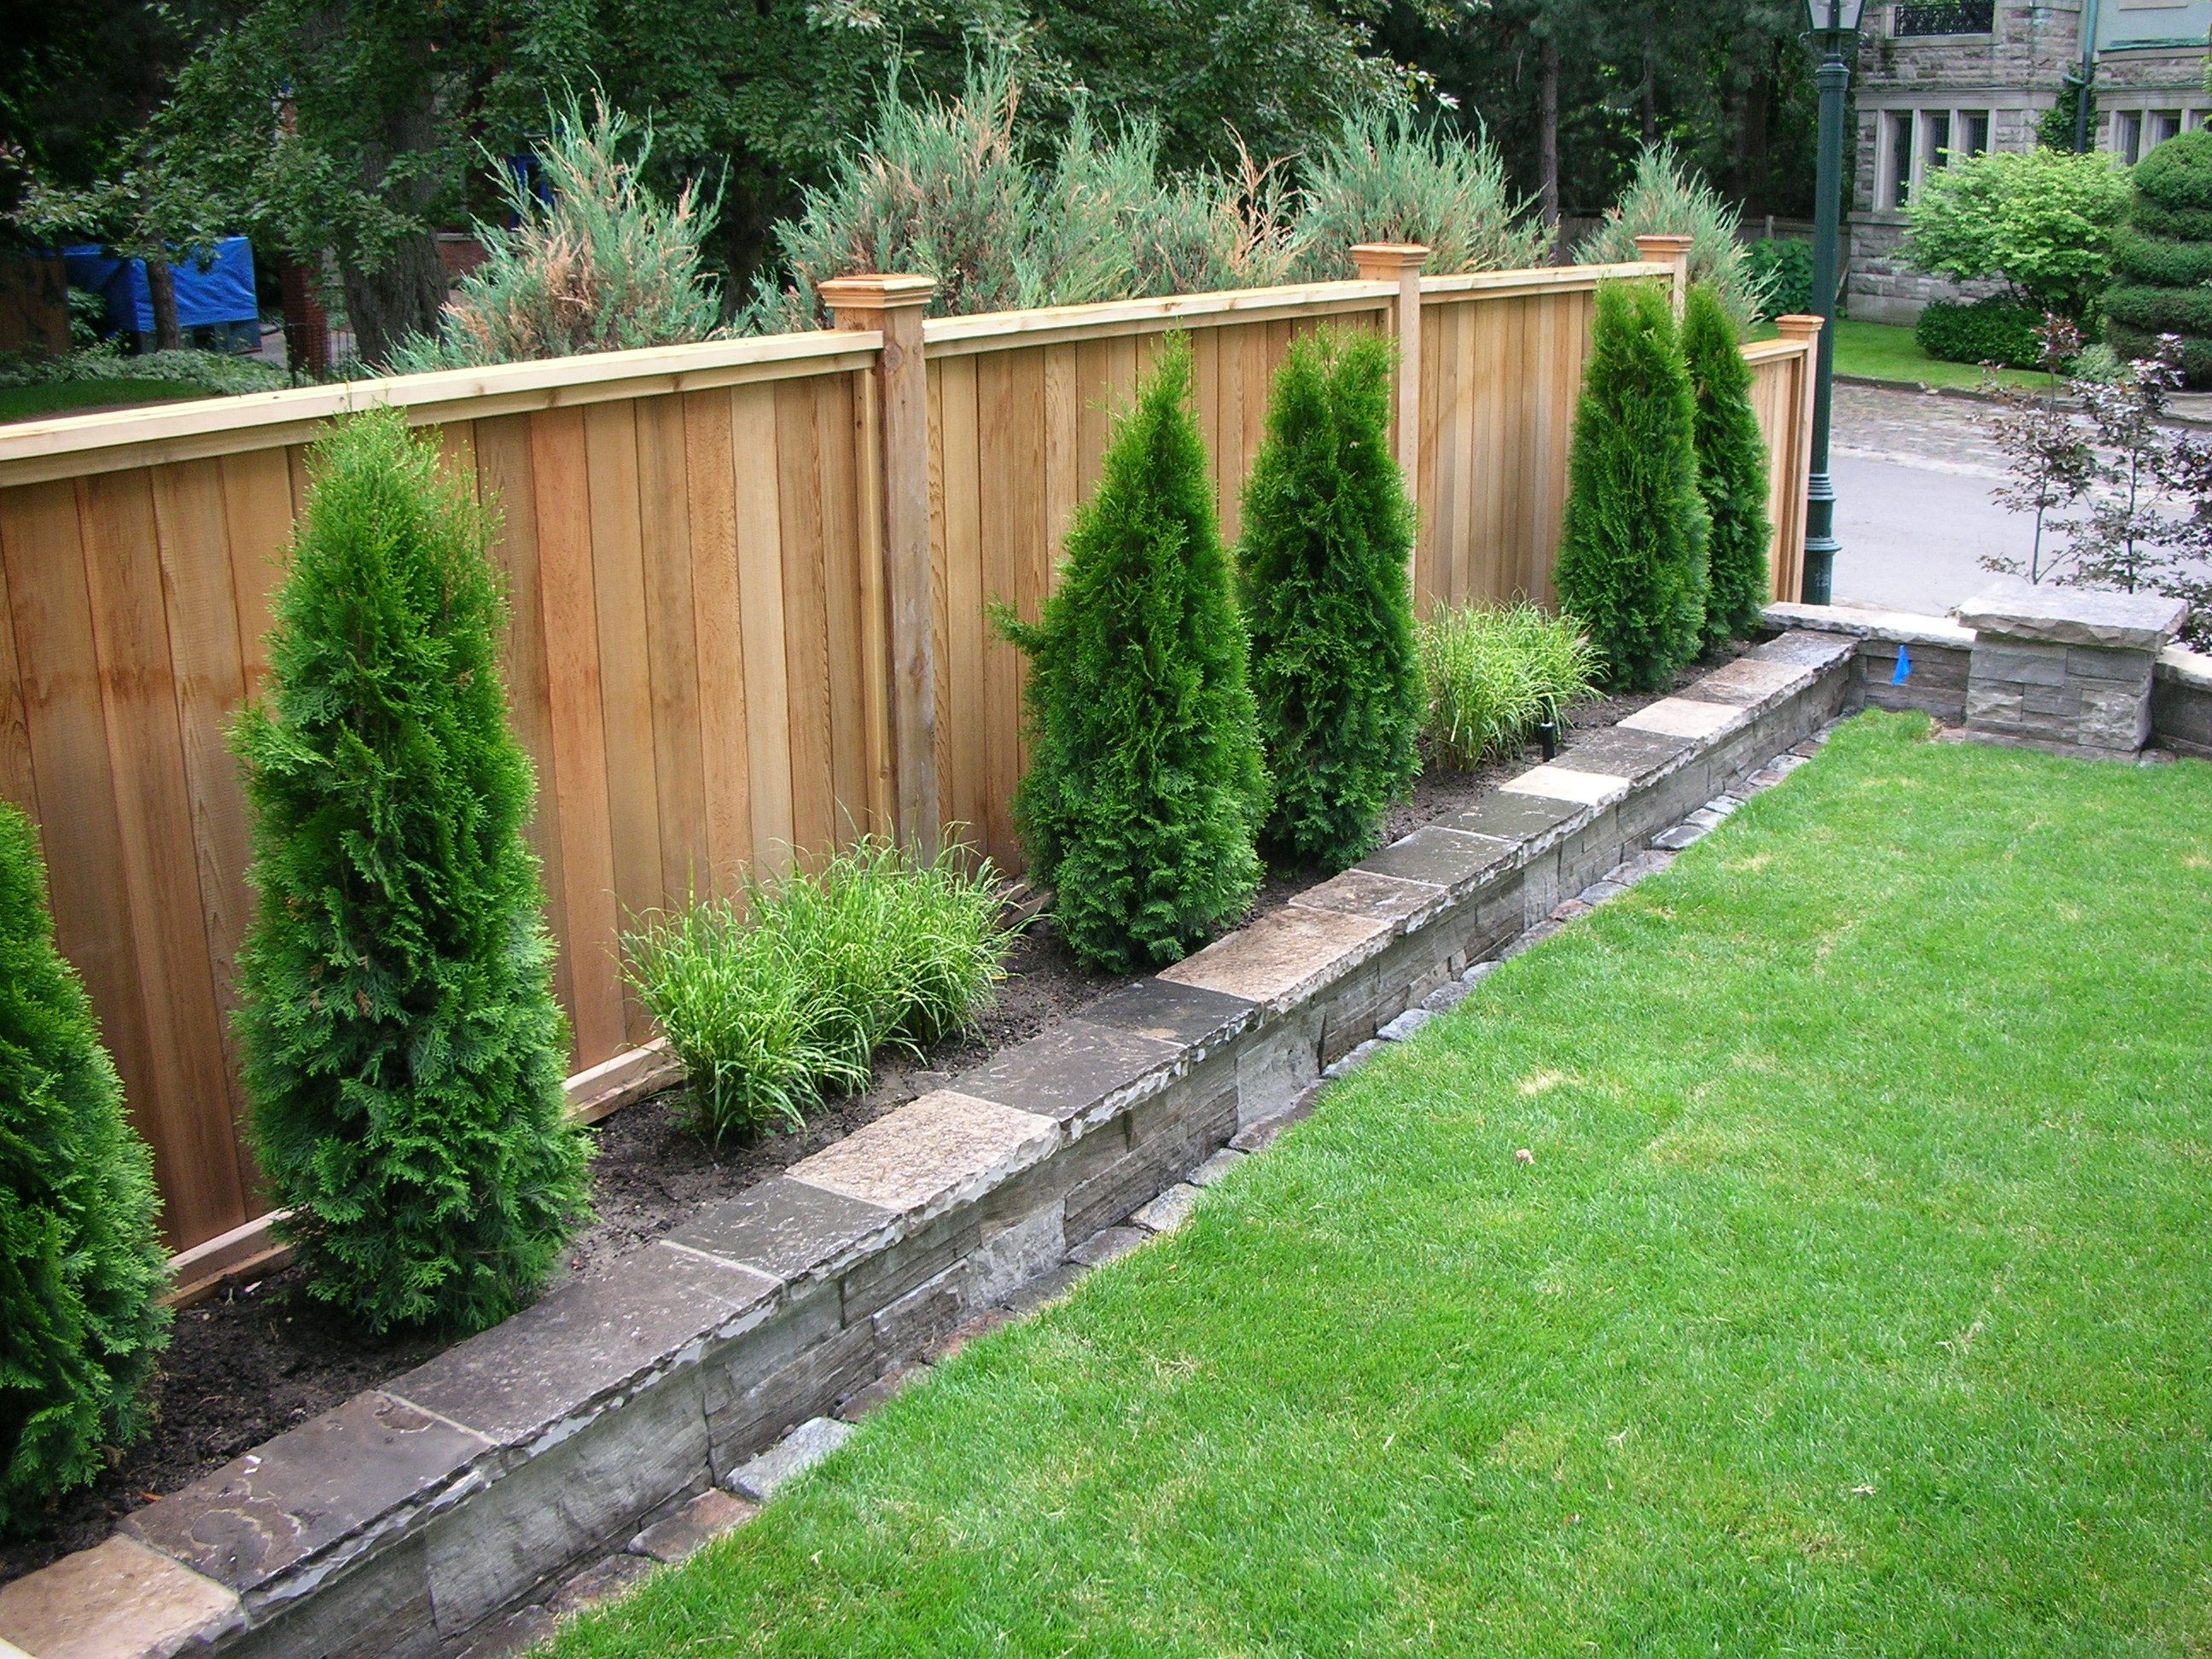 Backyard fencing privacy fence fence sod irrigation for Small front yard ideas with fence